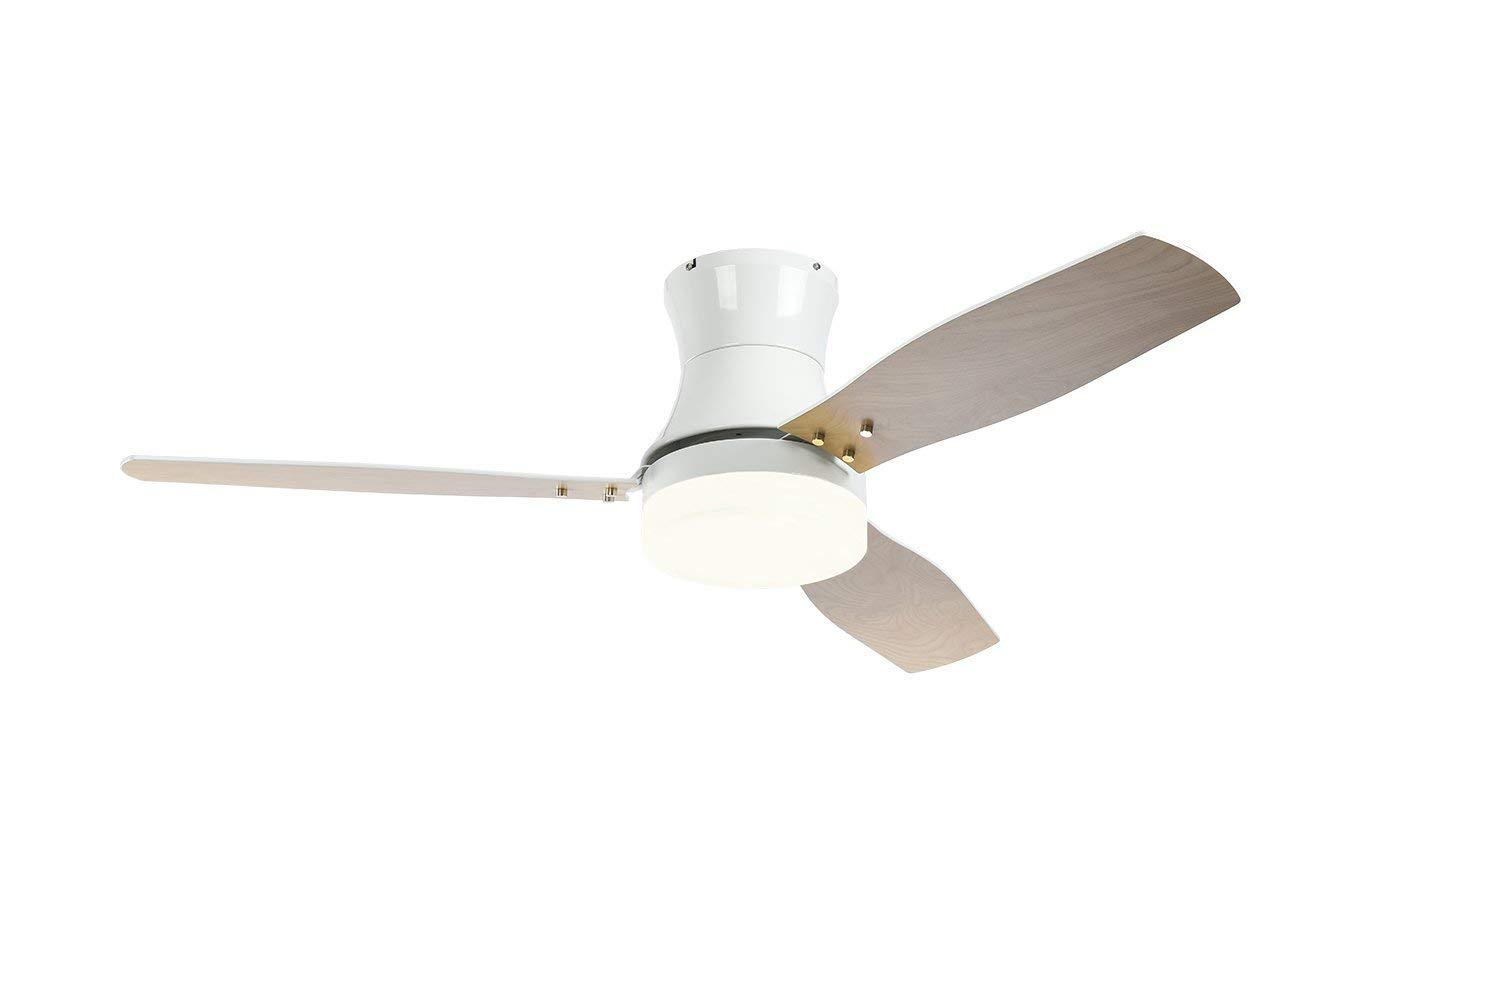 Ceiling Fans with Lights and Remote, Stamo 52 inch Indoor Ceiling Fan with Three Color LED Light, 3 Speed Remote Control Timing Function Super Noiseless 3 Blades, White